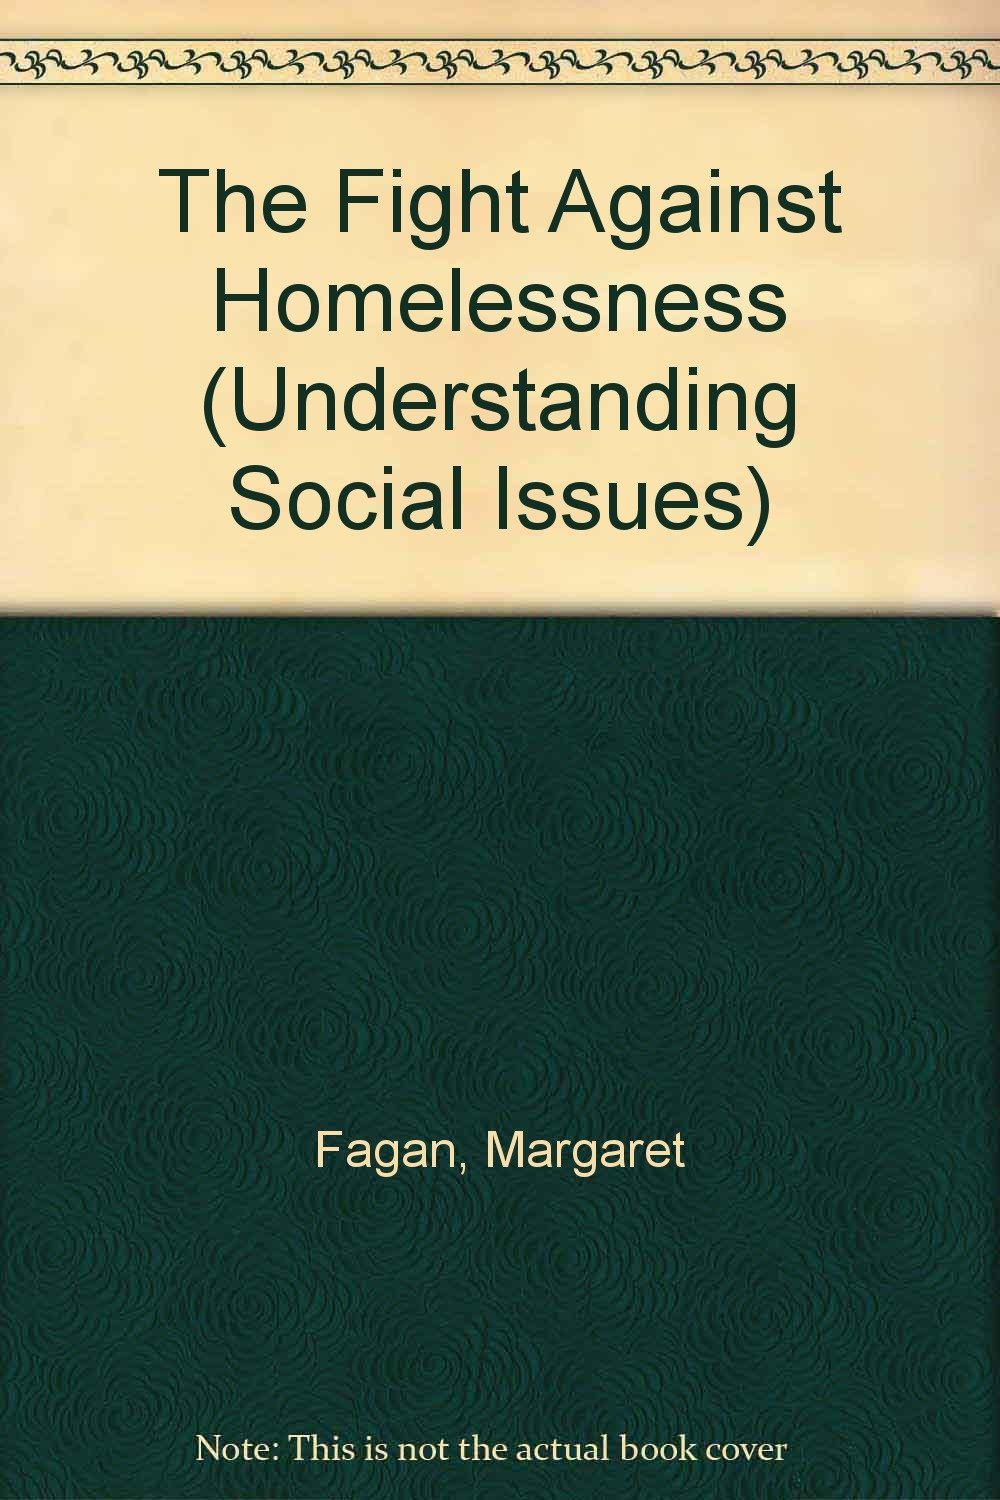 Is homelessness a social issue. The Social Issues of ...